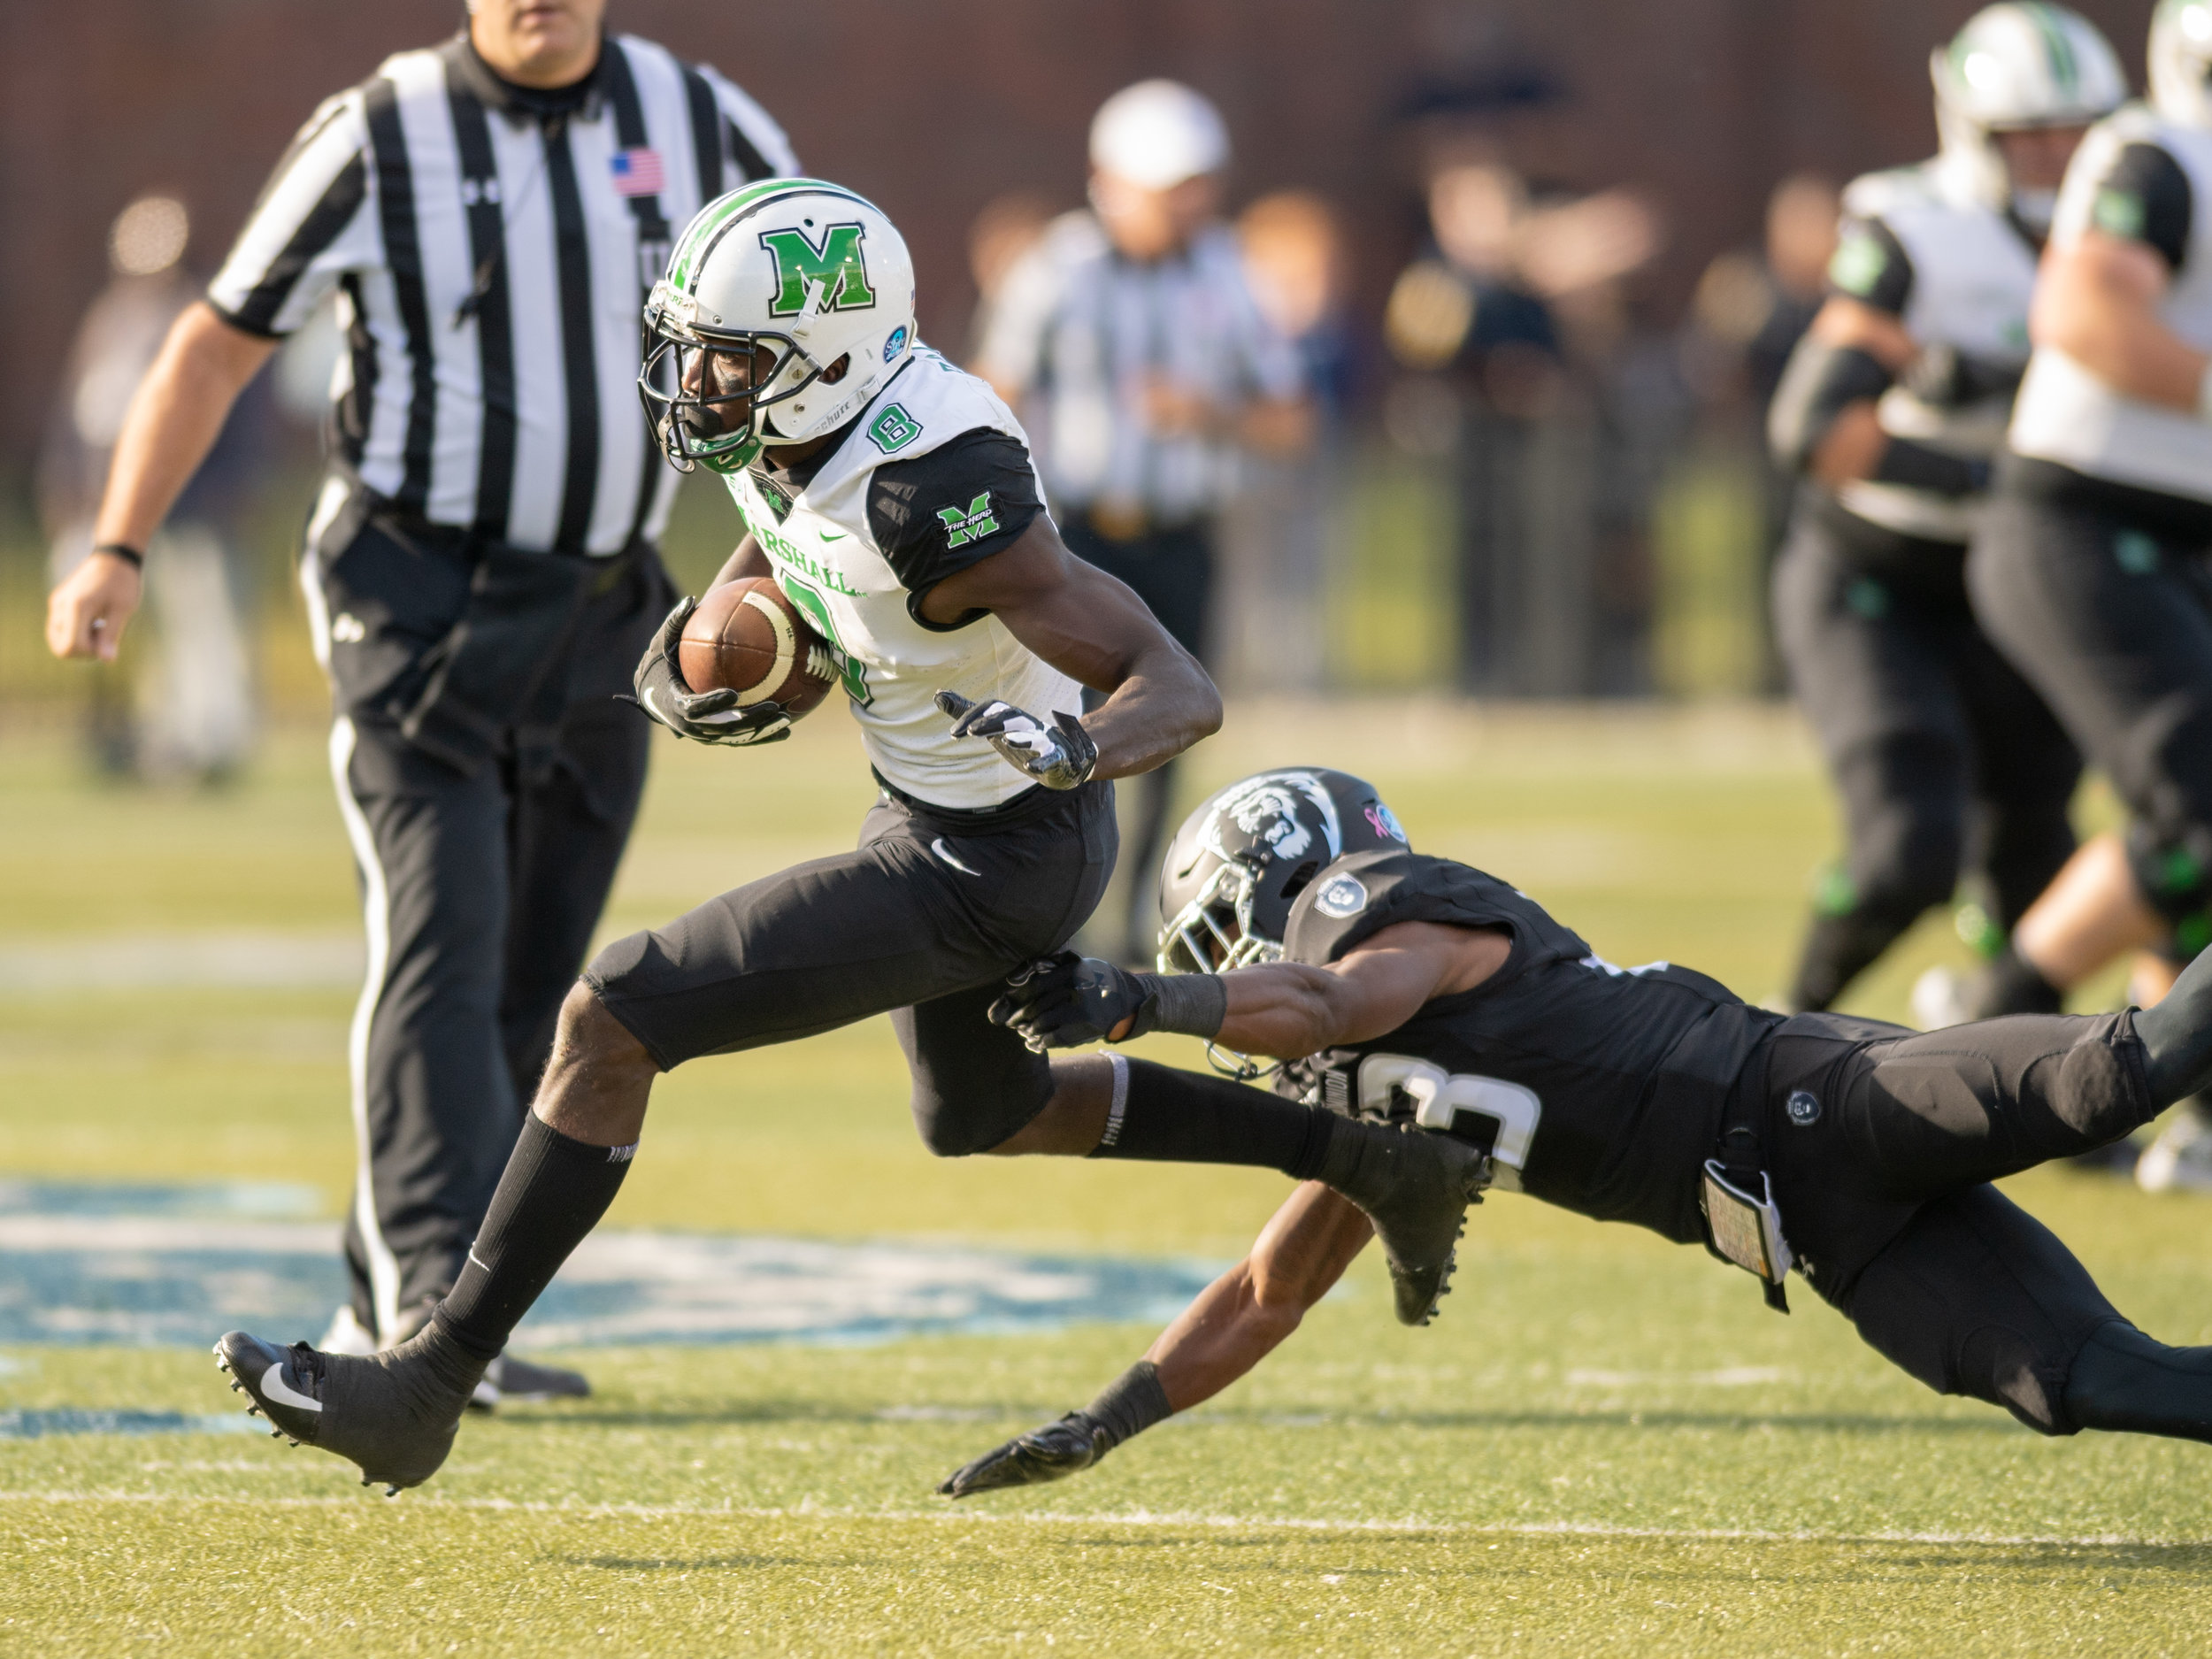 Marshall Thundering Herd wide receiver Tyre Brady (8) escapes a tackle by Old Dominion Monarchs cornerback Geronda Hall (23) during the Saturday, Oct. 13, 2018 game held at Old Dominion University in Norfolk, Virginia. Marshall leads Old Dominion 14 to 3 at halftime.